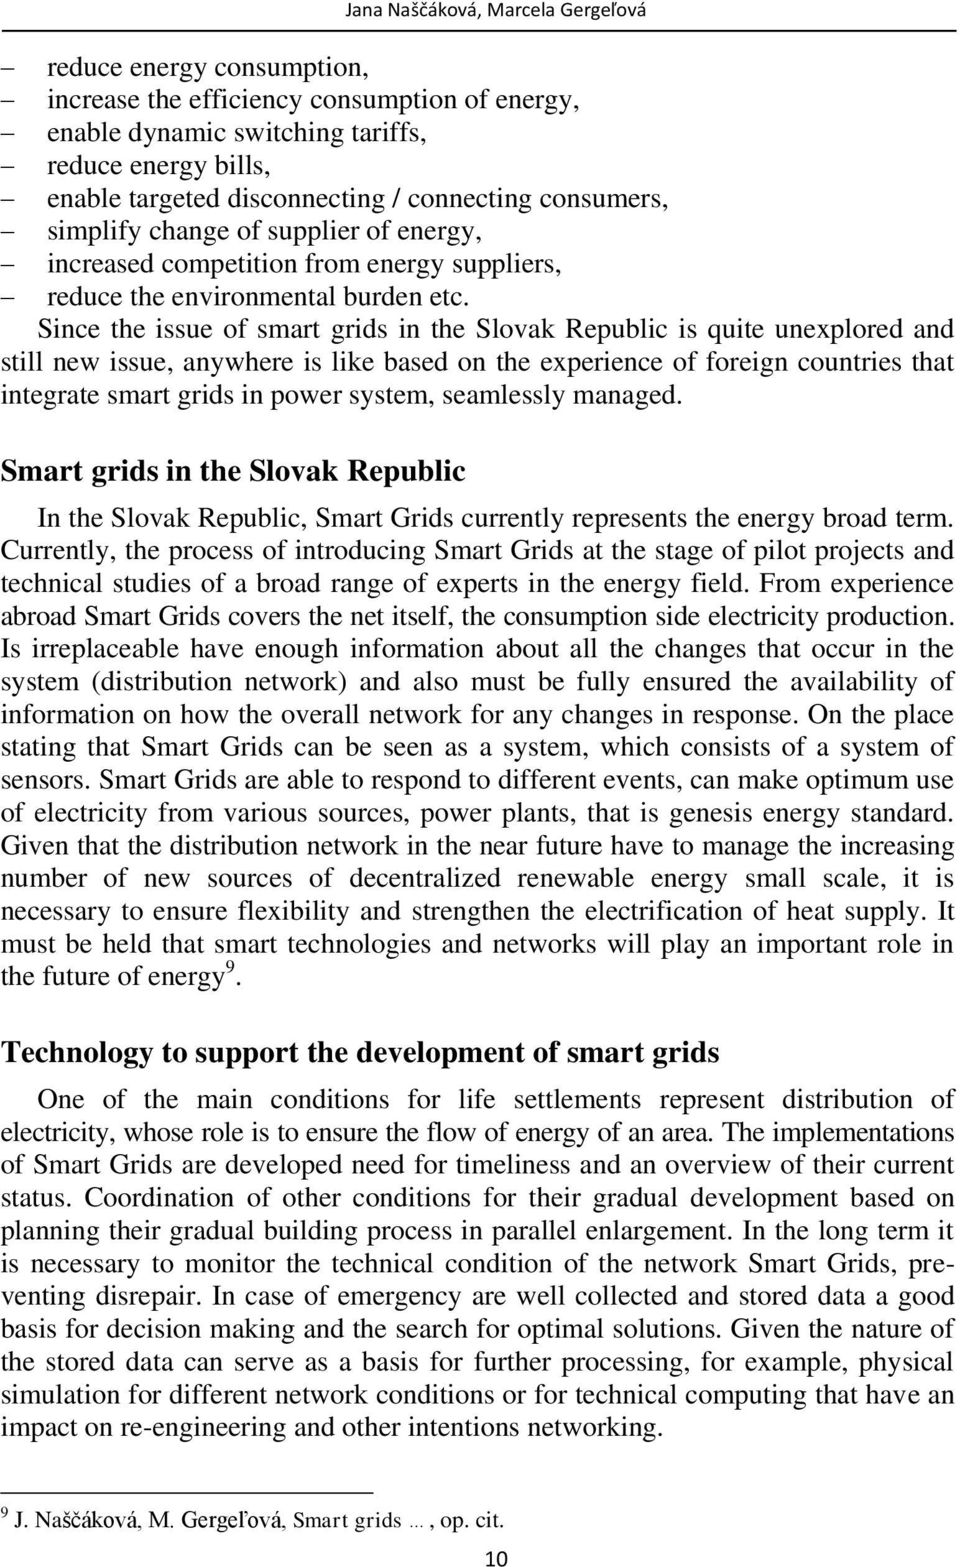 Since the issue of smart grids in the Slovak Republic is quite unexplored and still new issue, anywhere is like based on the experience of foreign countries that integrate smart grids in power